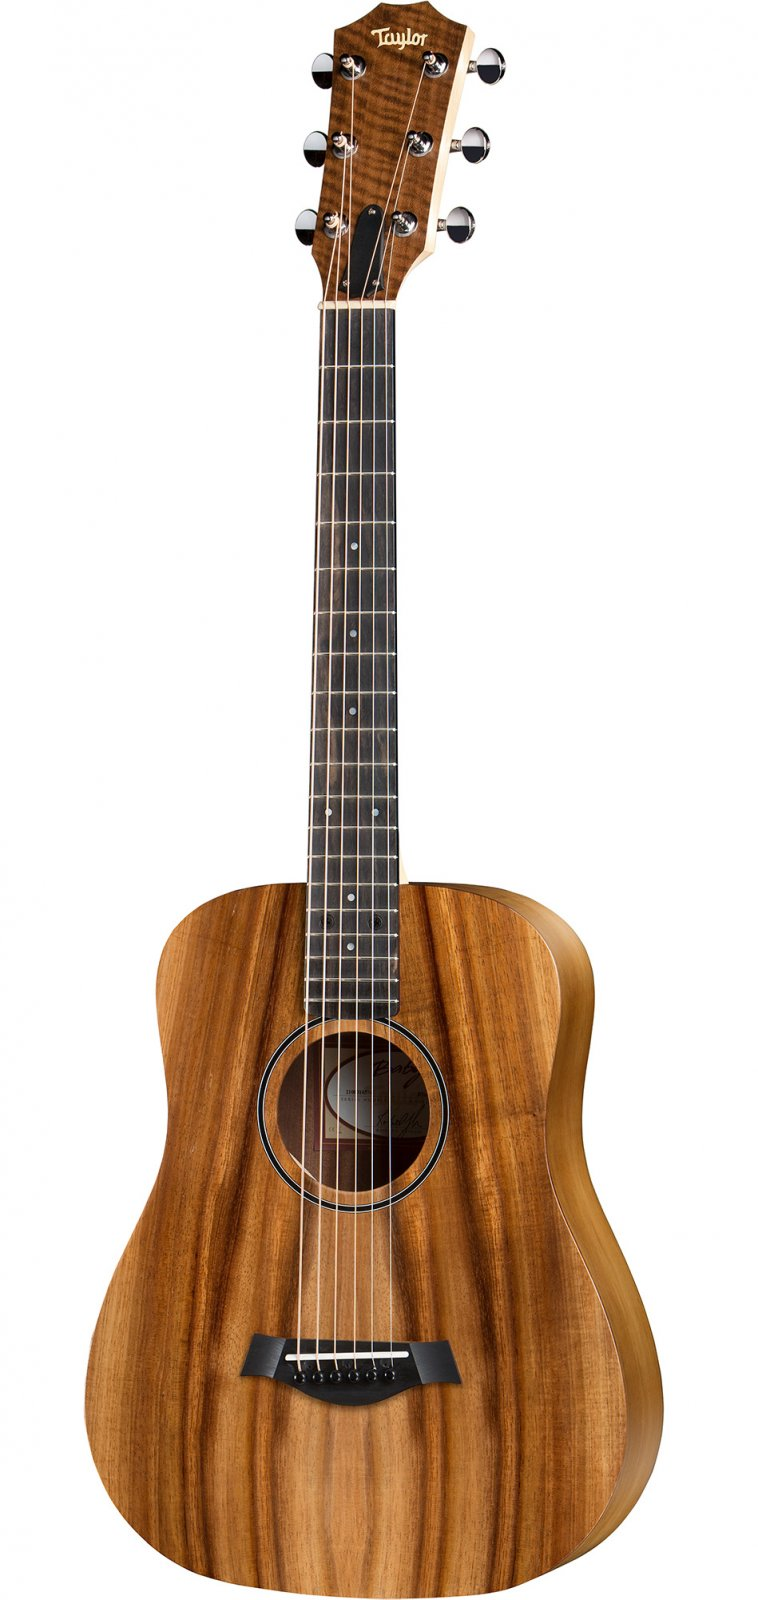 Taylor BTe-Koa Baby Taylor Acoustic/Electric Guitar with Gigbag